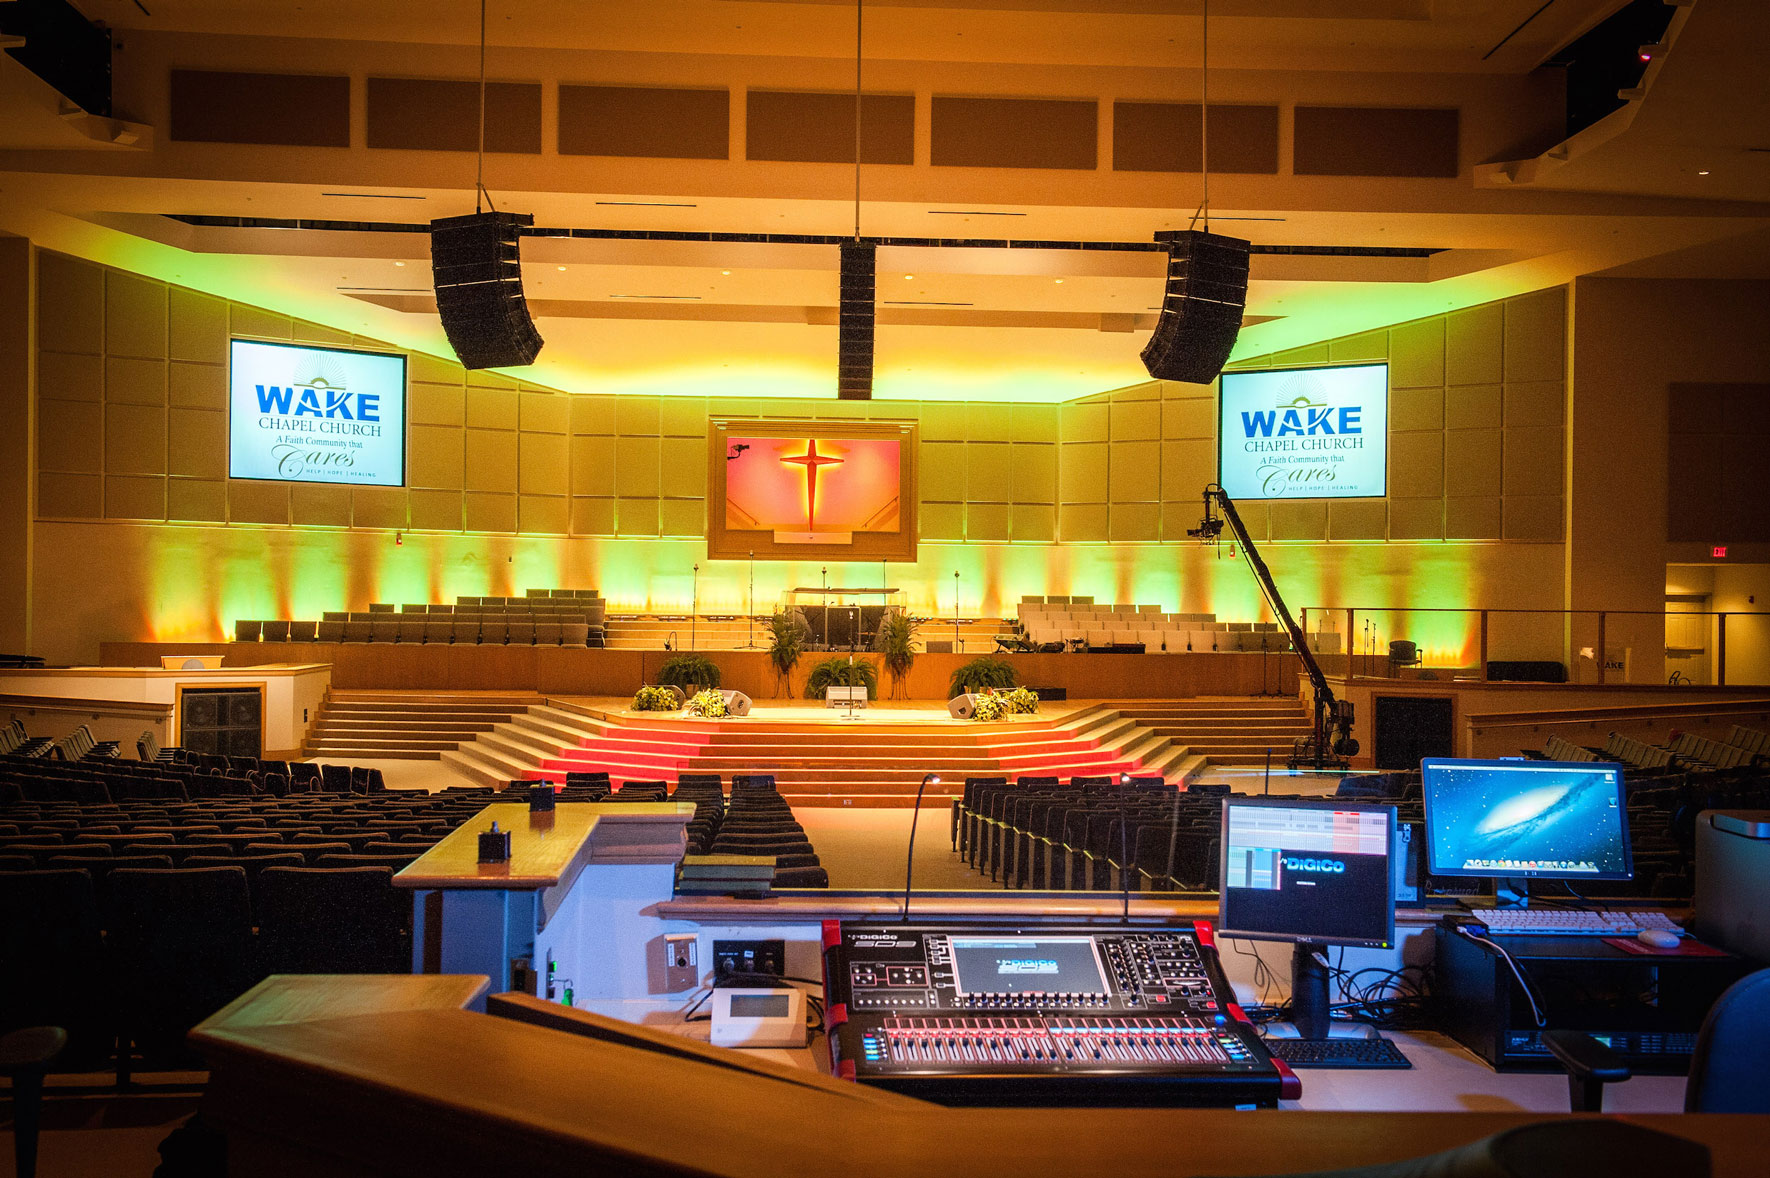 Wake Chapel DiGiCo Install